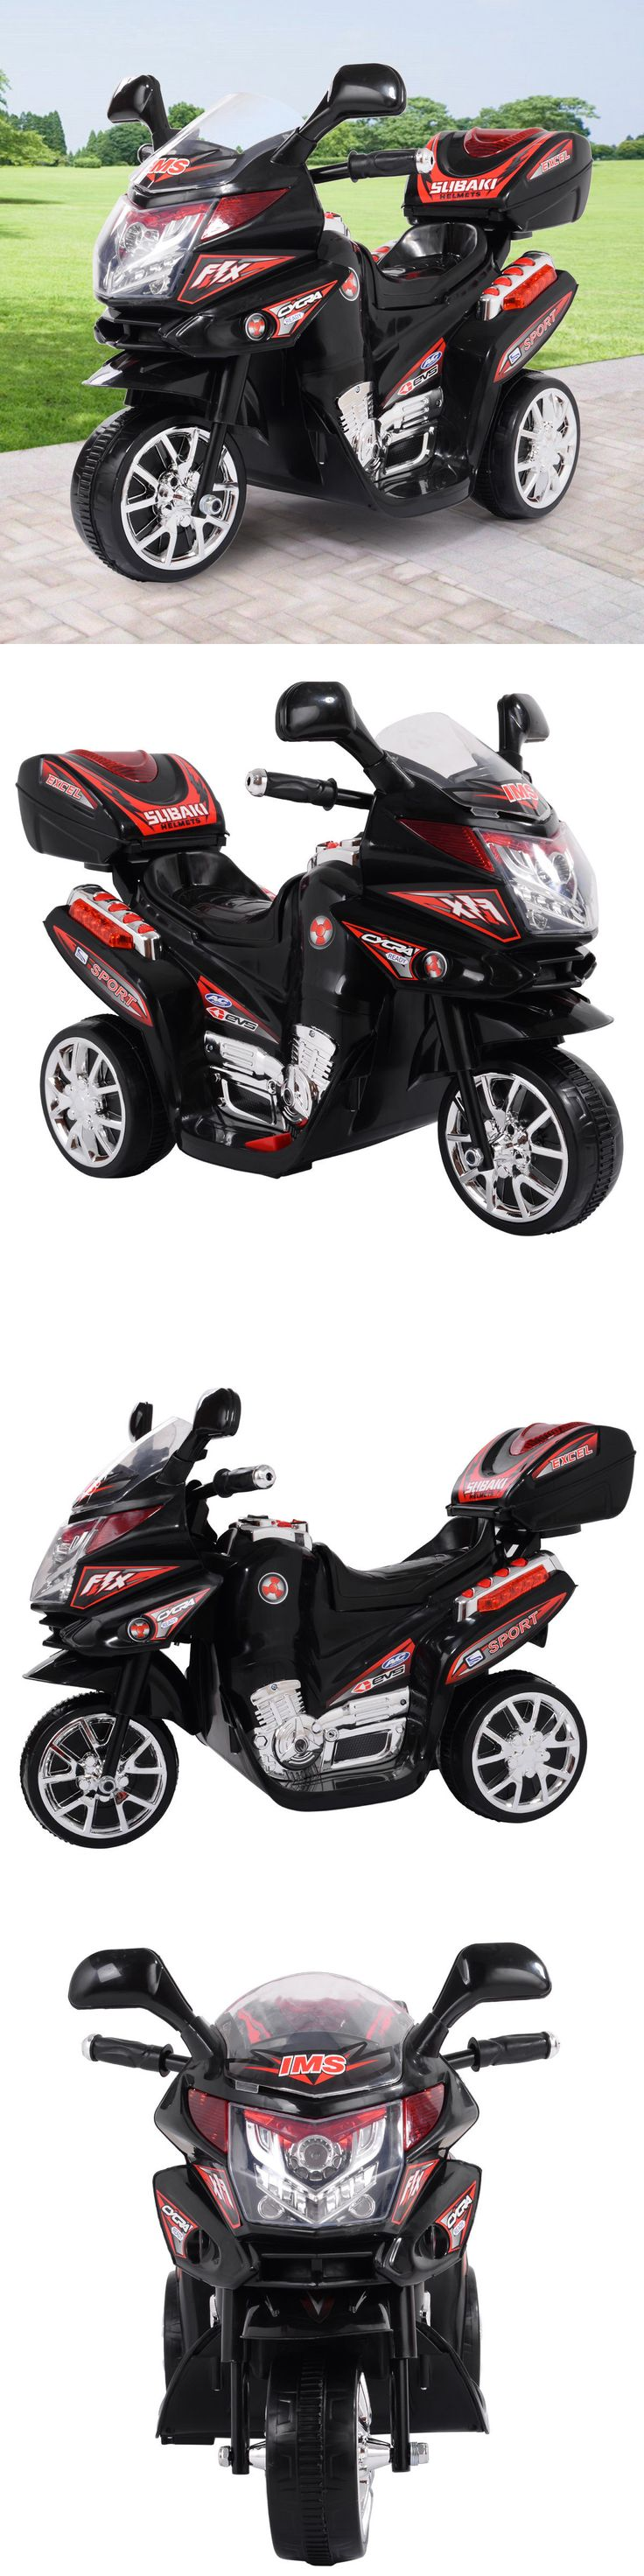 Ride On Toys and Accessories 145944: Kids 3 Wheel Electric Motorcycle 6V Bike Battery Powered Ride On Toy New Black -> BUY IT NOW ONLY: $43.99 on eBay!